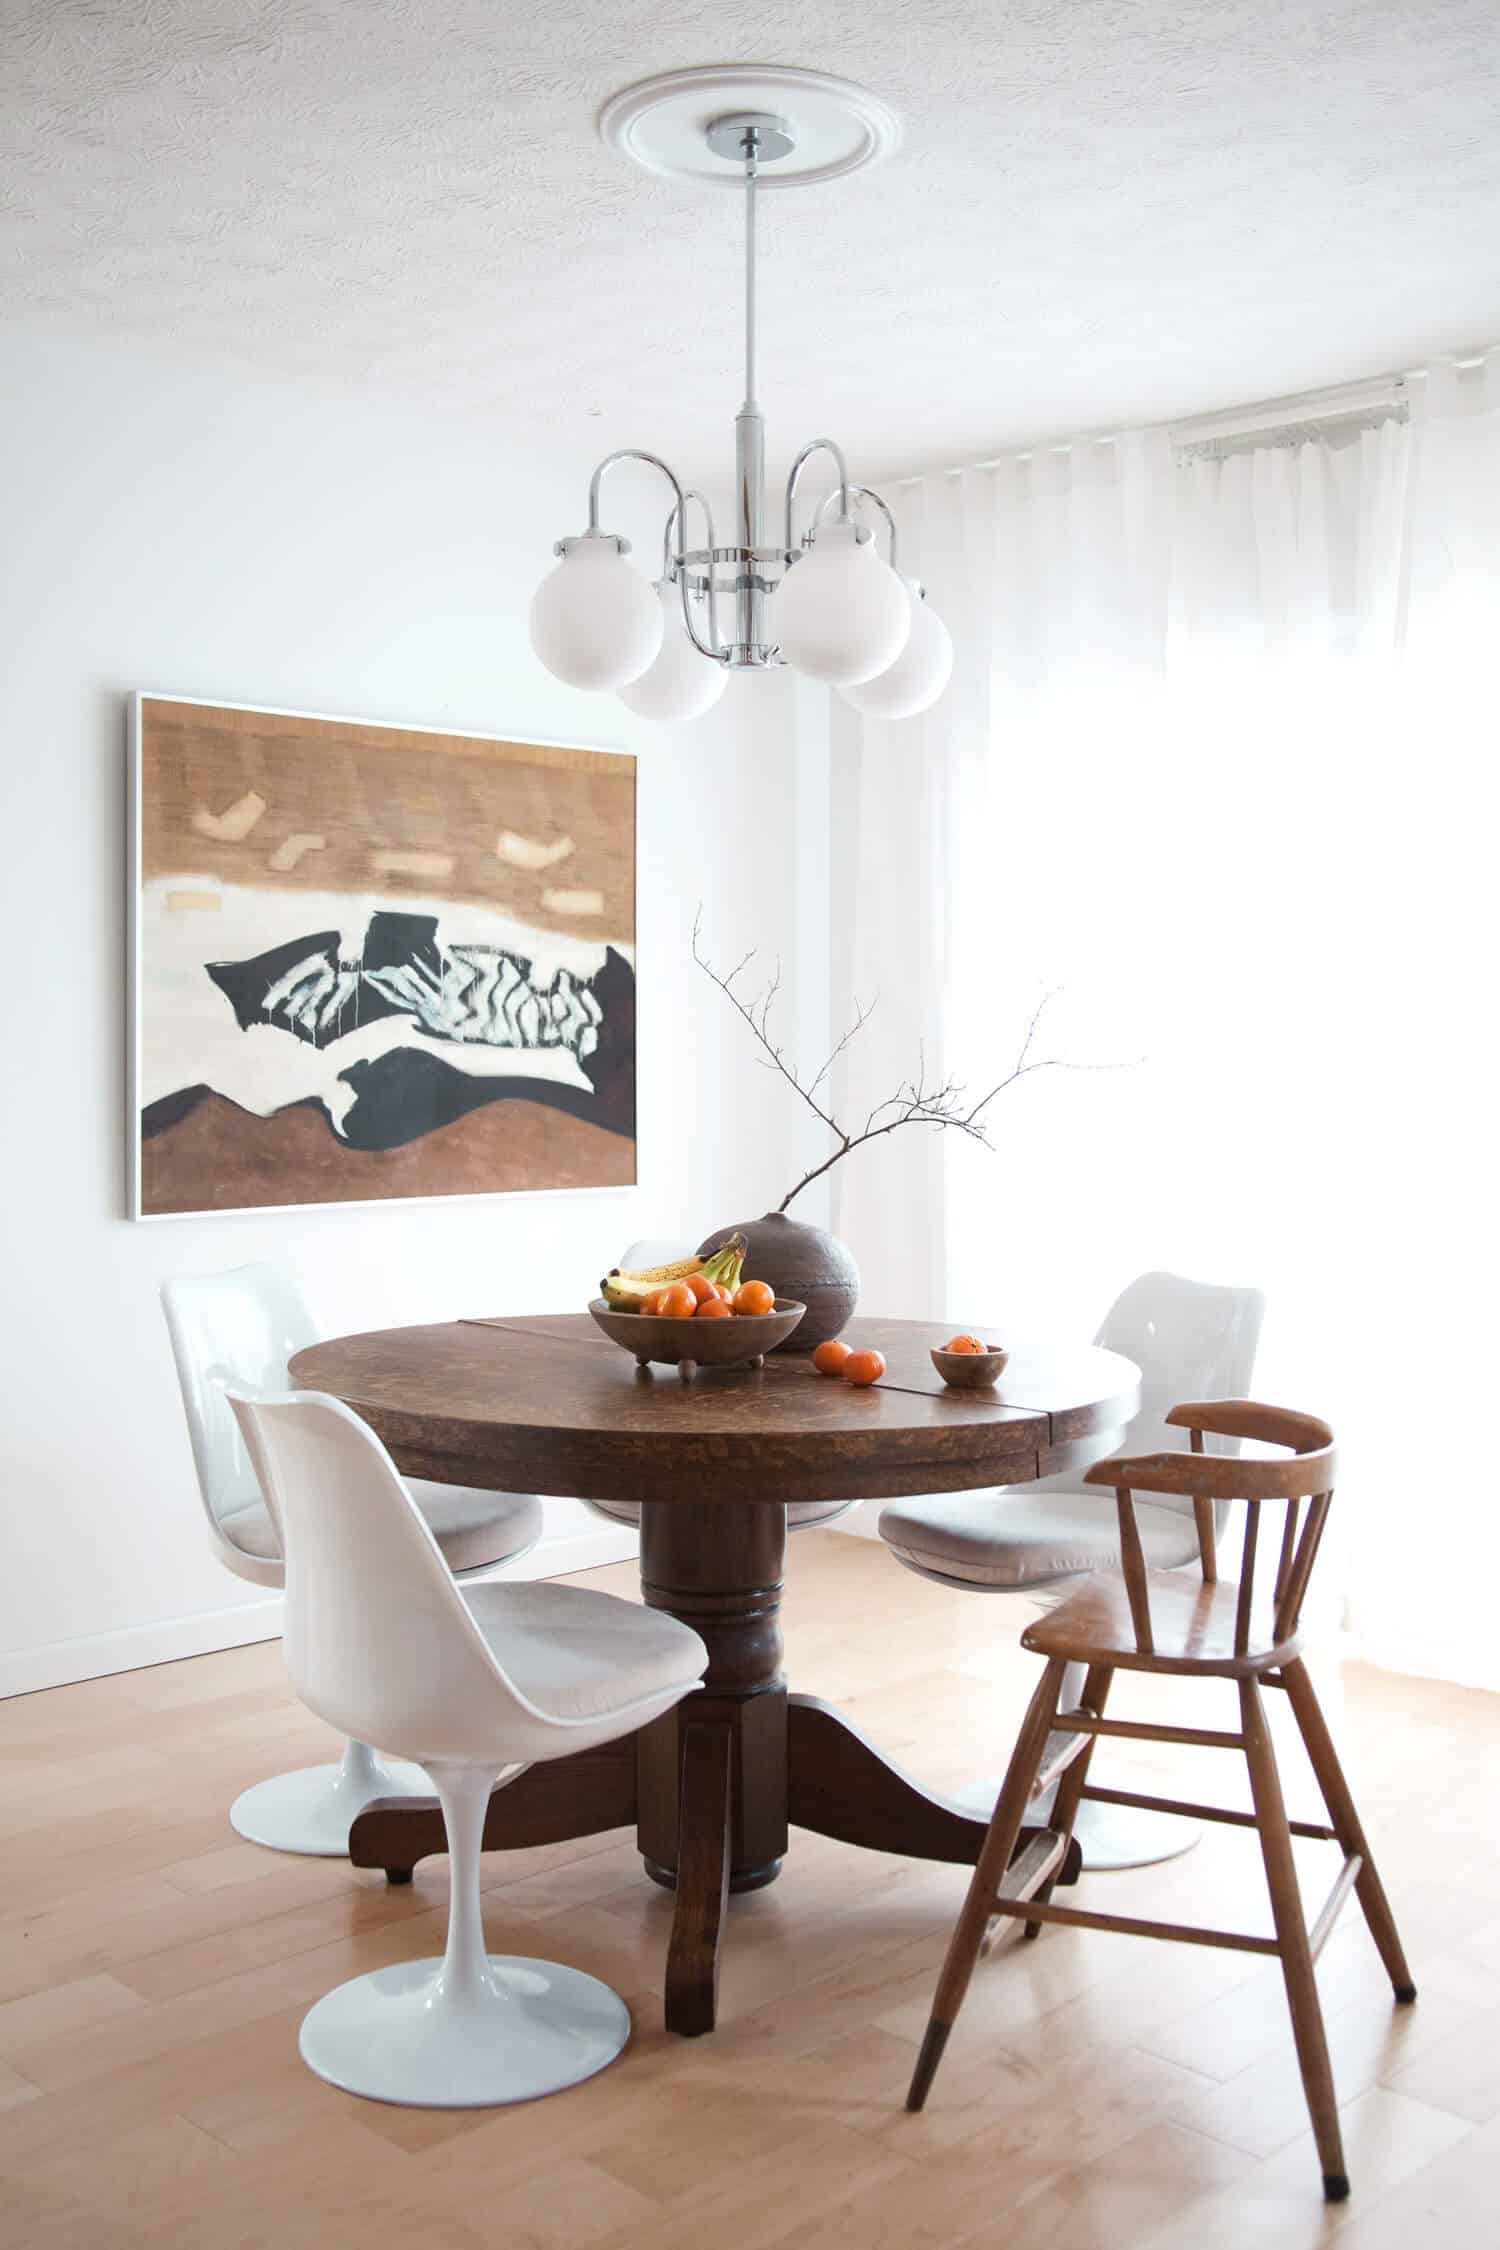 Antique pedestal table with modern tulip chairs